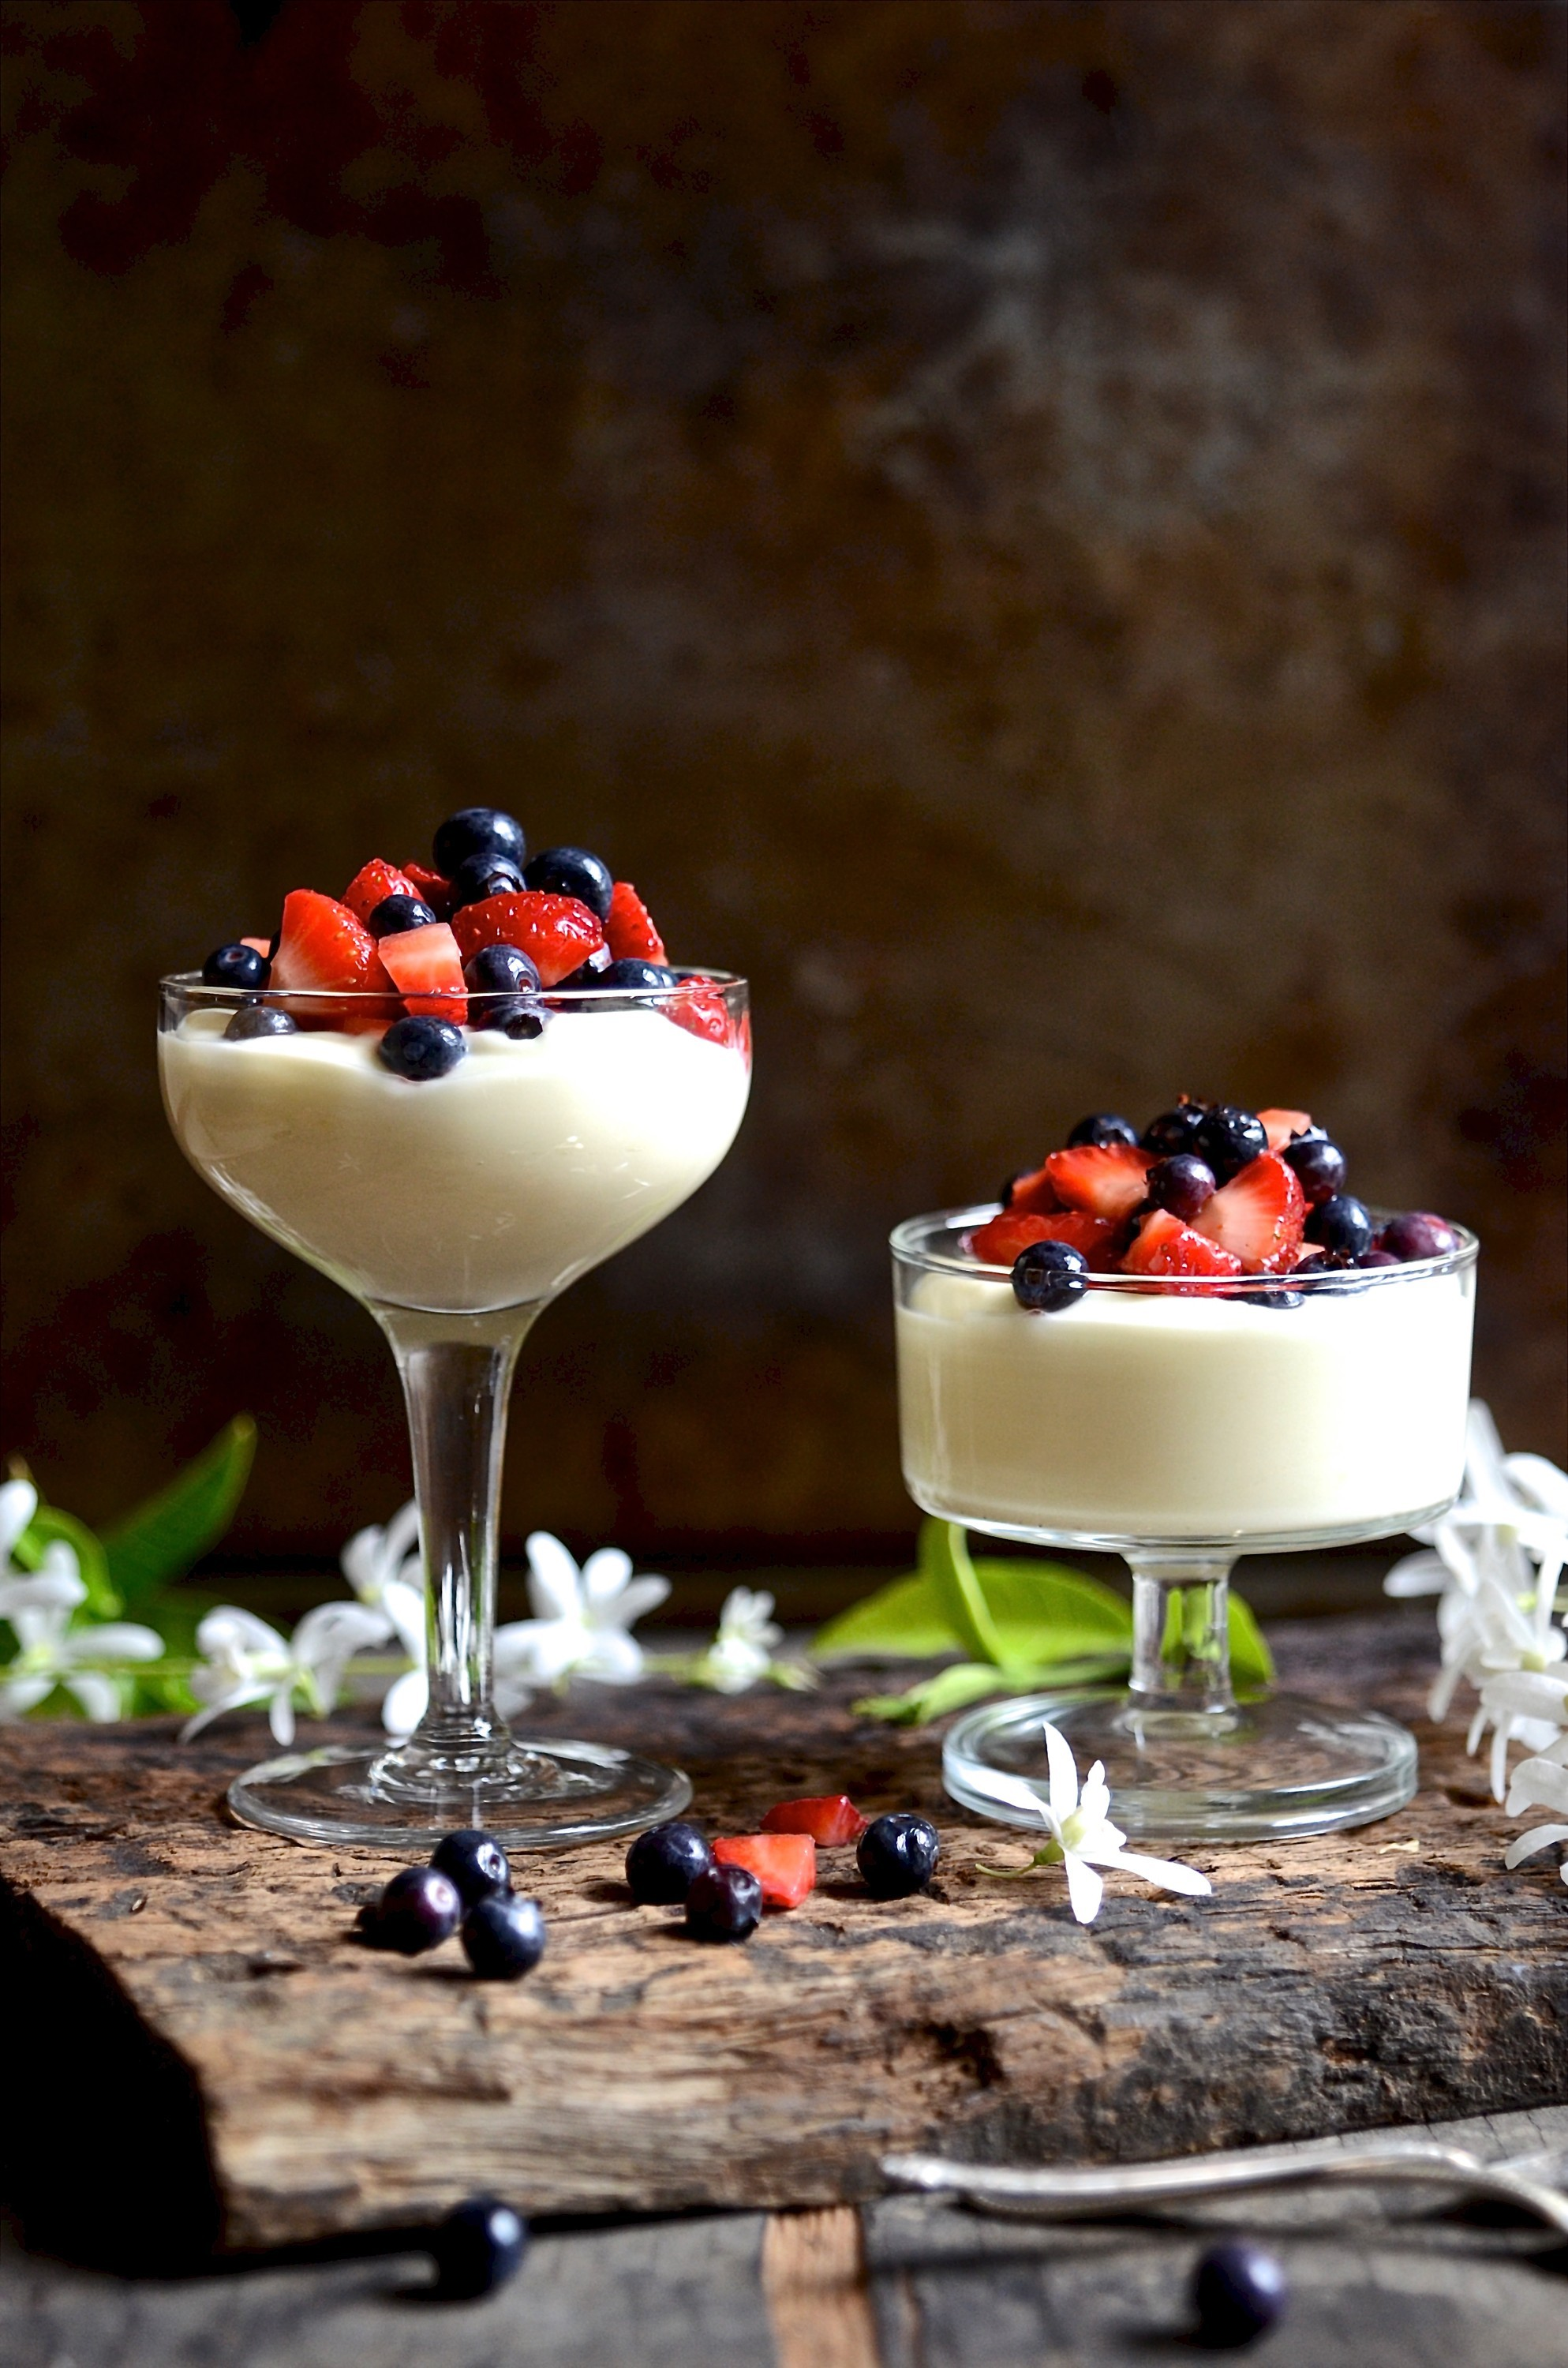 Lemon curd yoghurt creams with syrupy summer berries | Bibbyskitchen